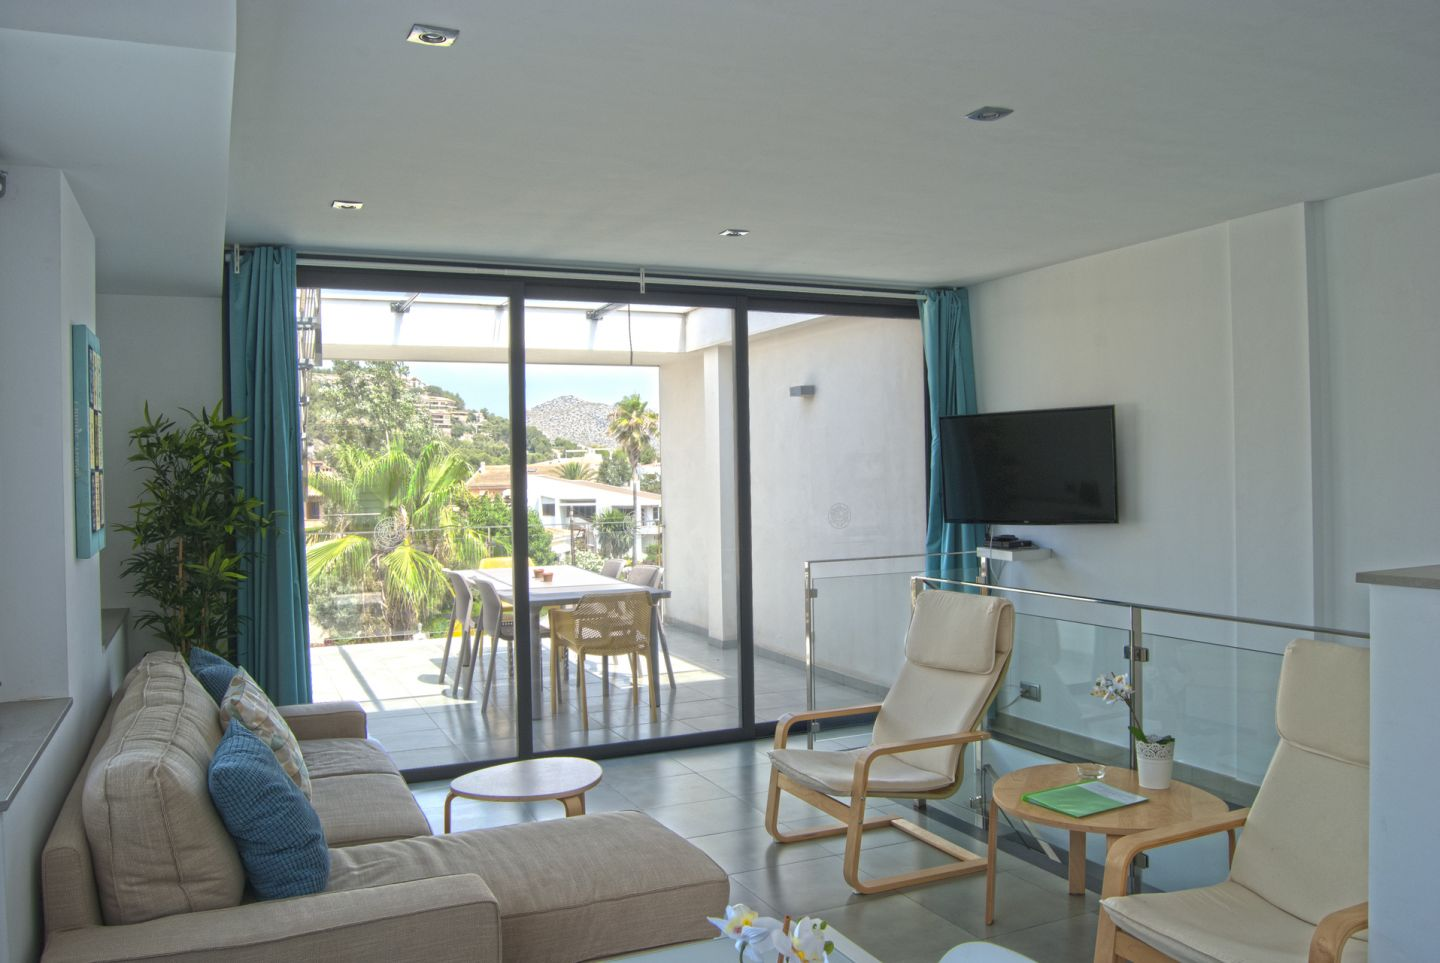 3 Bed Duplex for sale in PUERTO POLLENSA 2